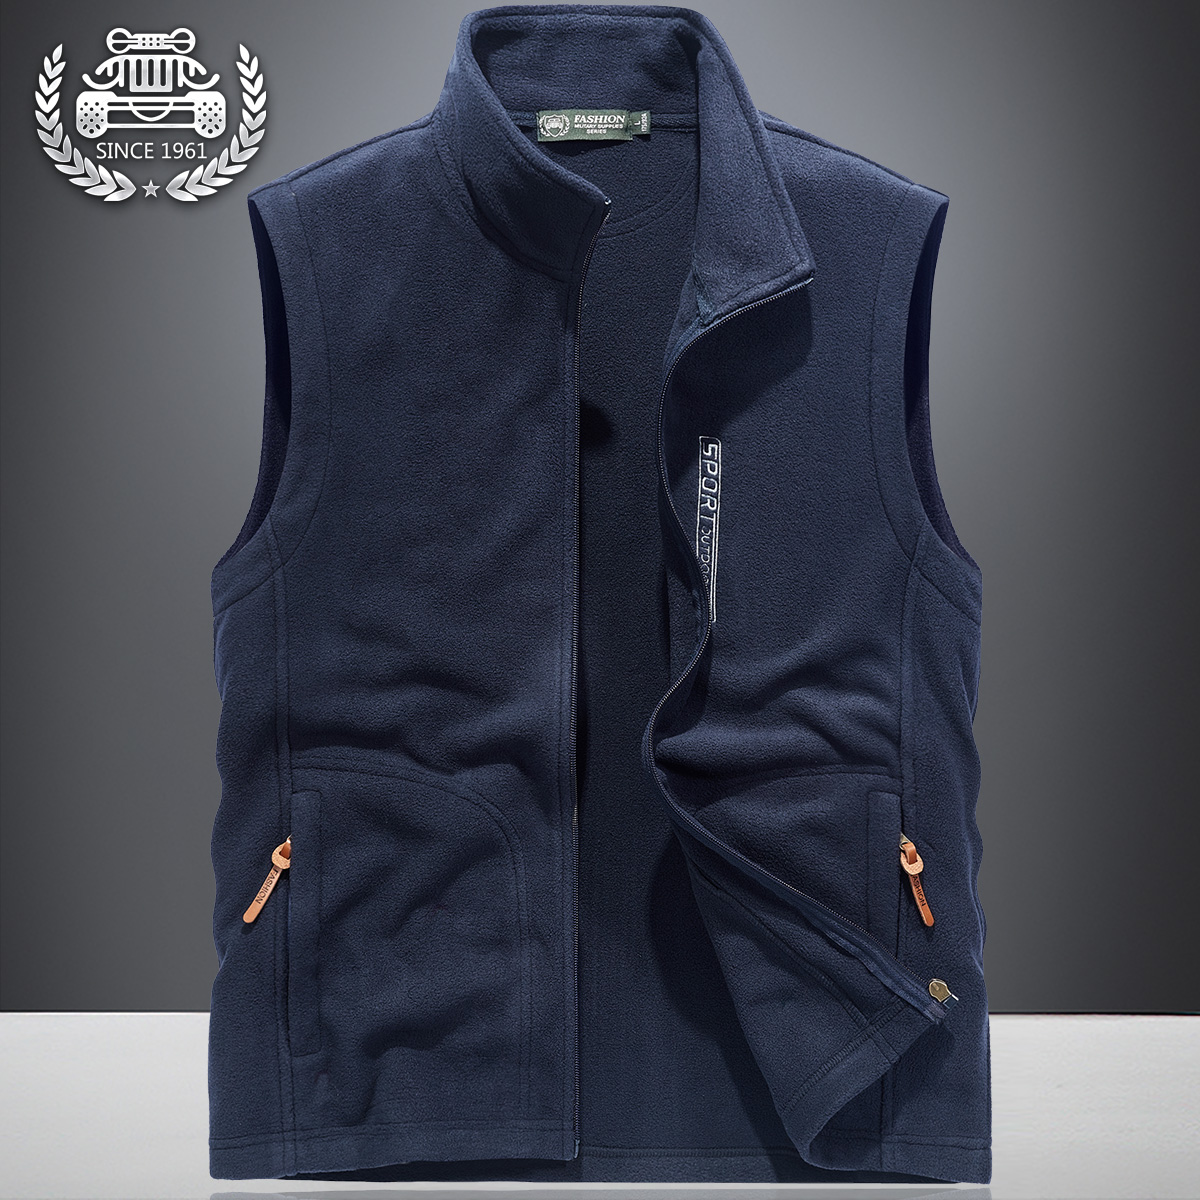 Spring outdoor vest men's thin Fleece Jacket Large loose waistcoat spring and autumn leisure sports coat